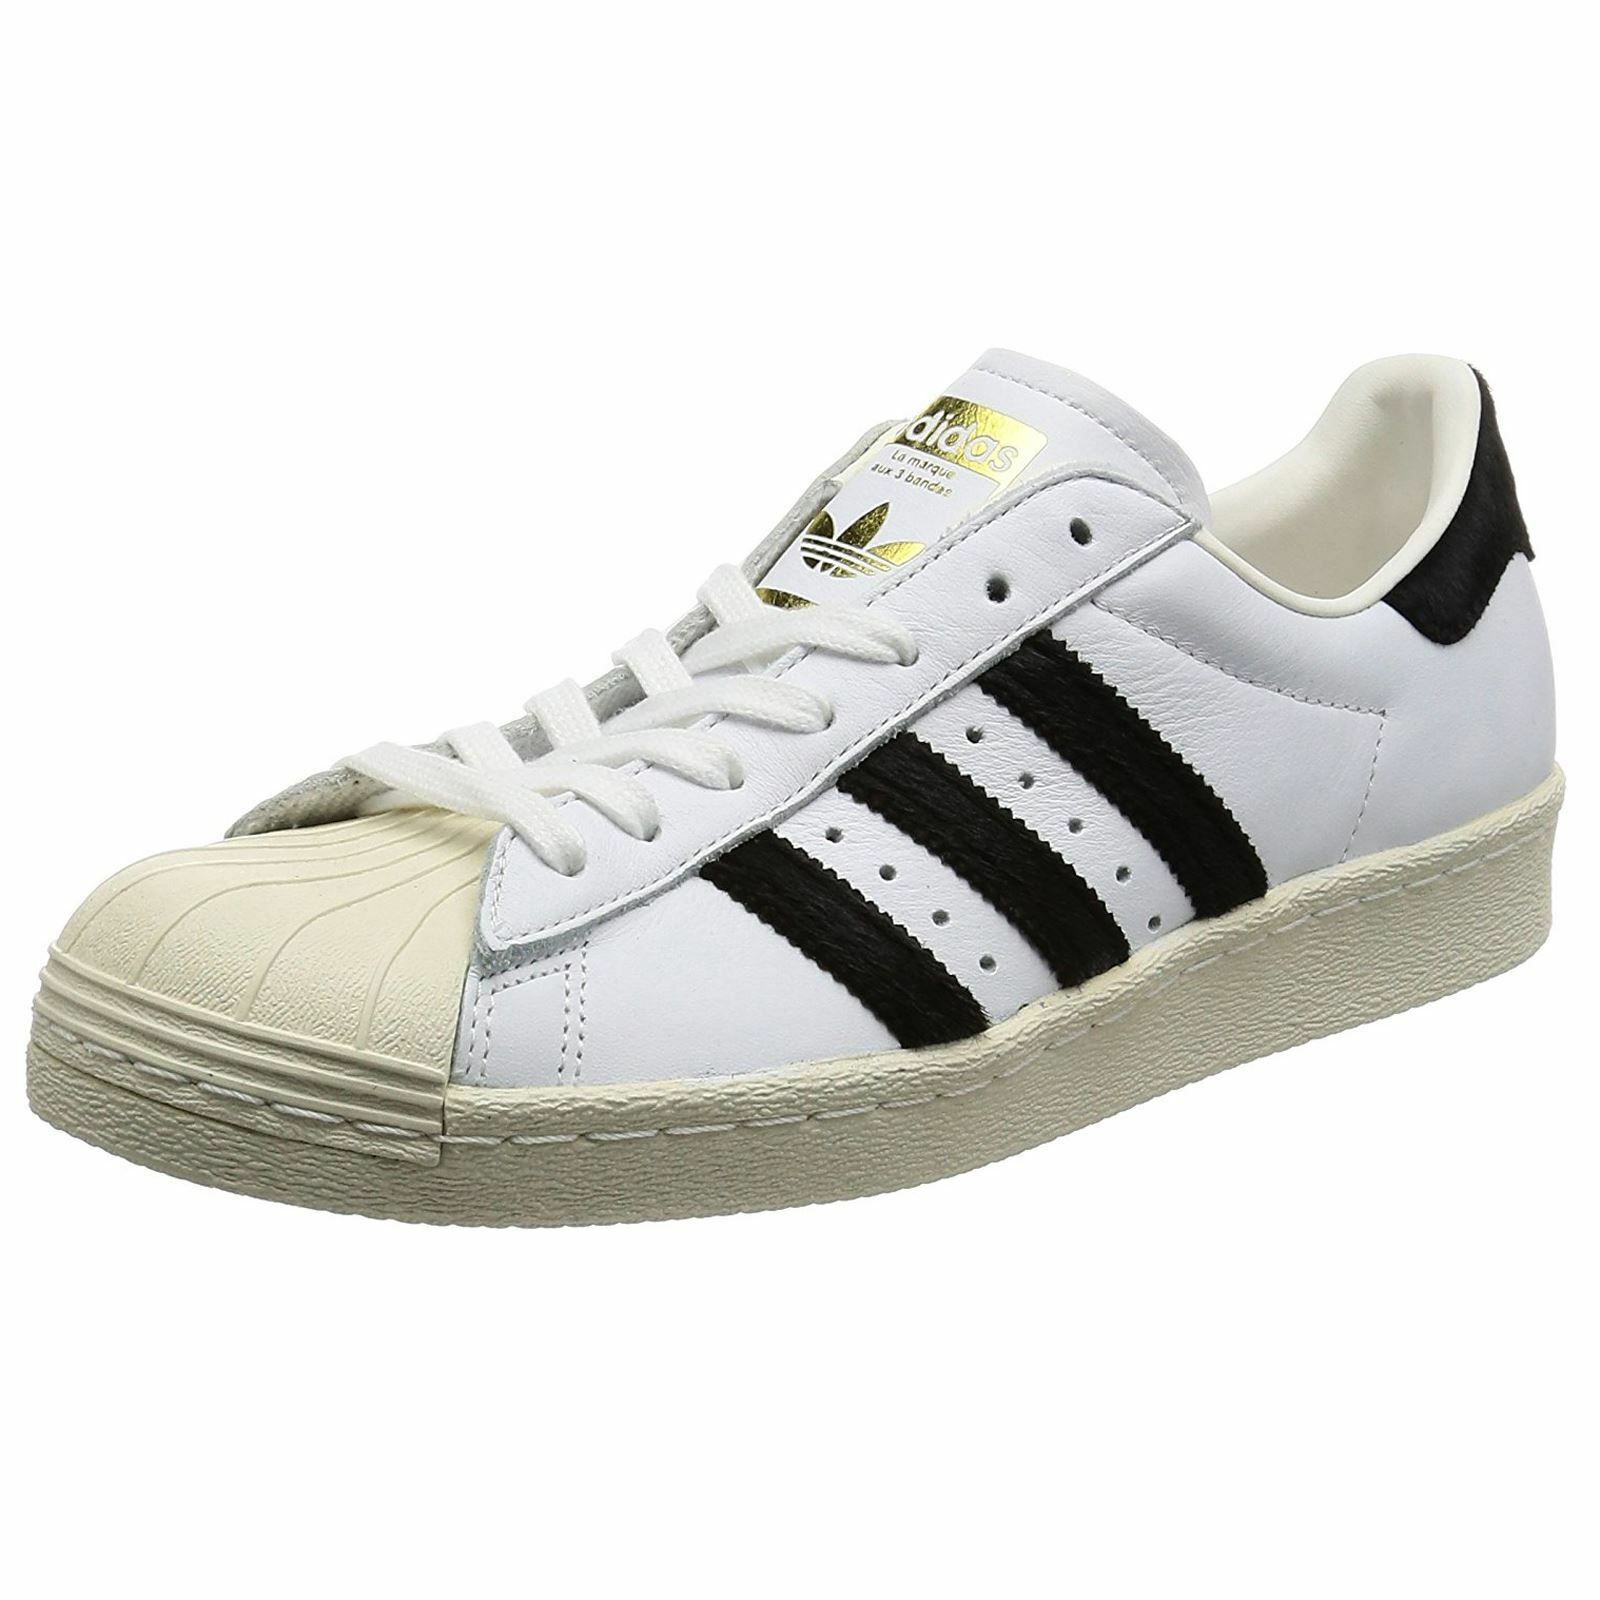 Adidas Superstar Black 80s Footwear White Core Black Superstar Mens Leather Sneakers Trainers 1cdeb3